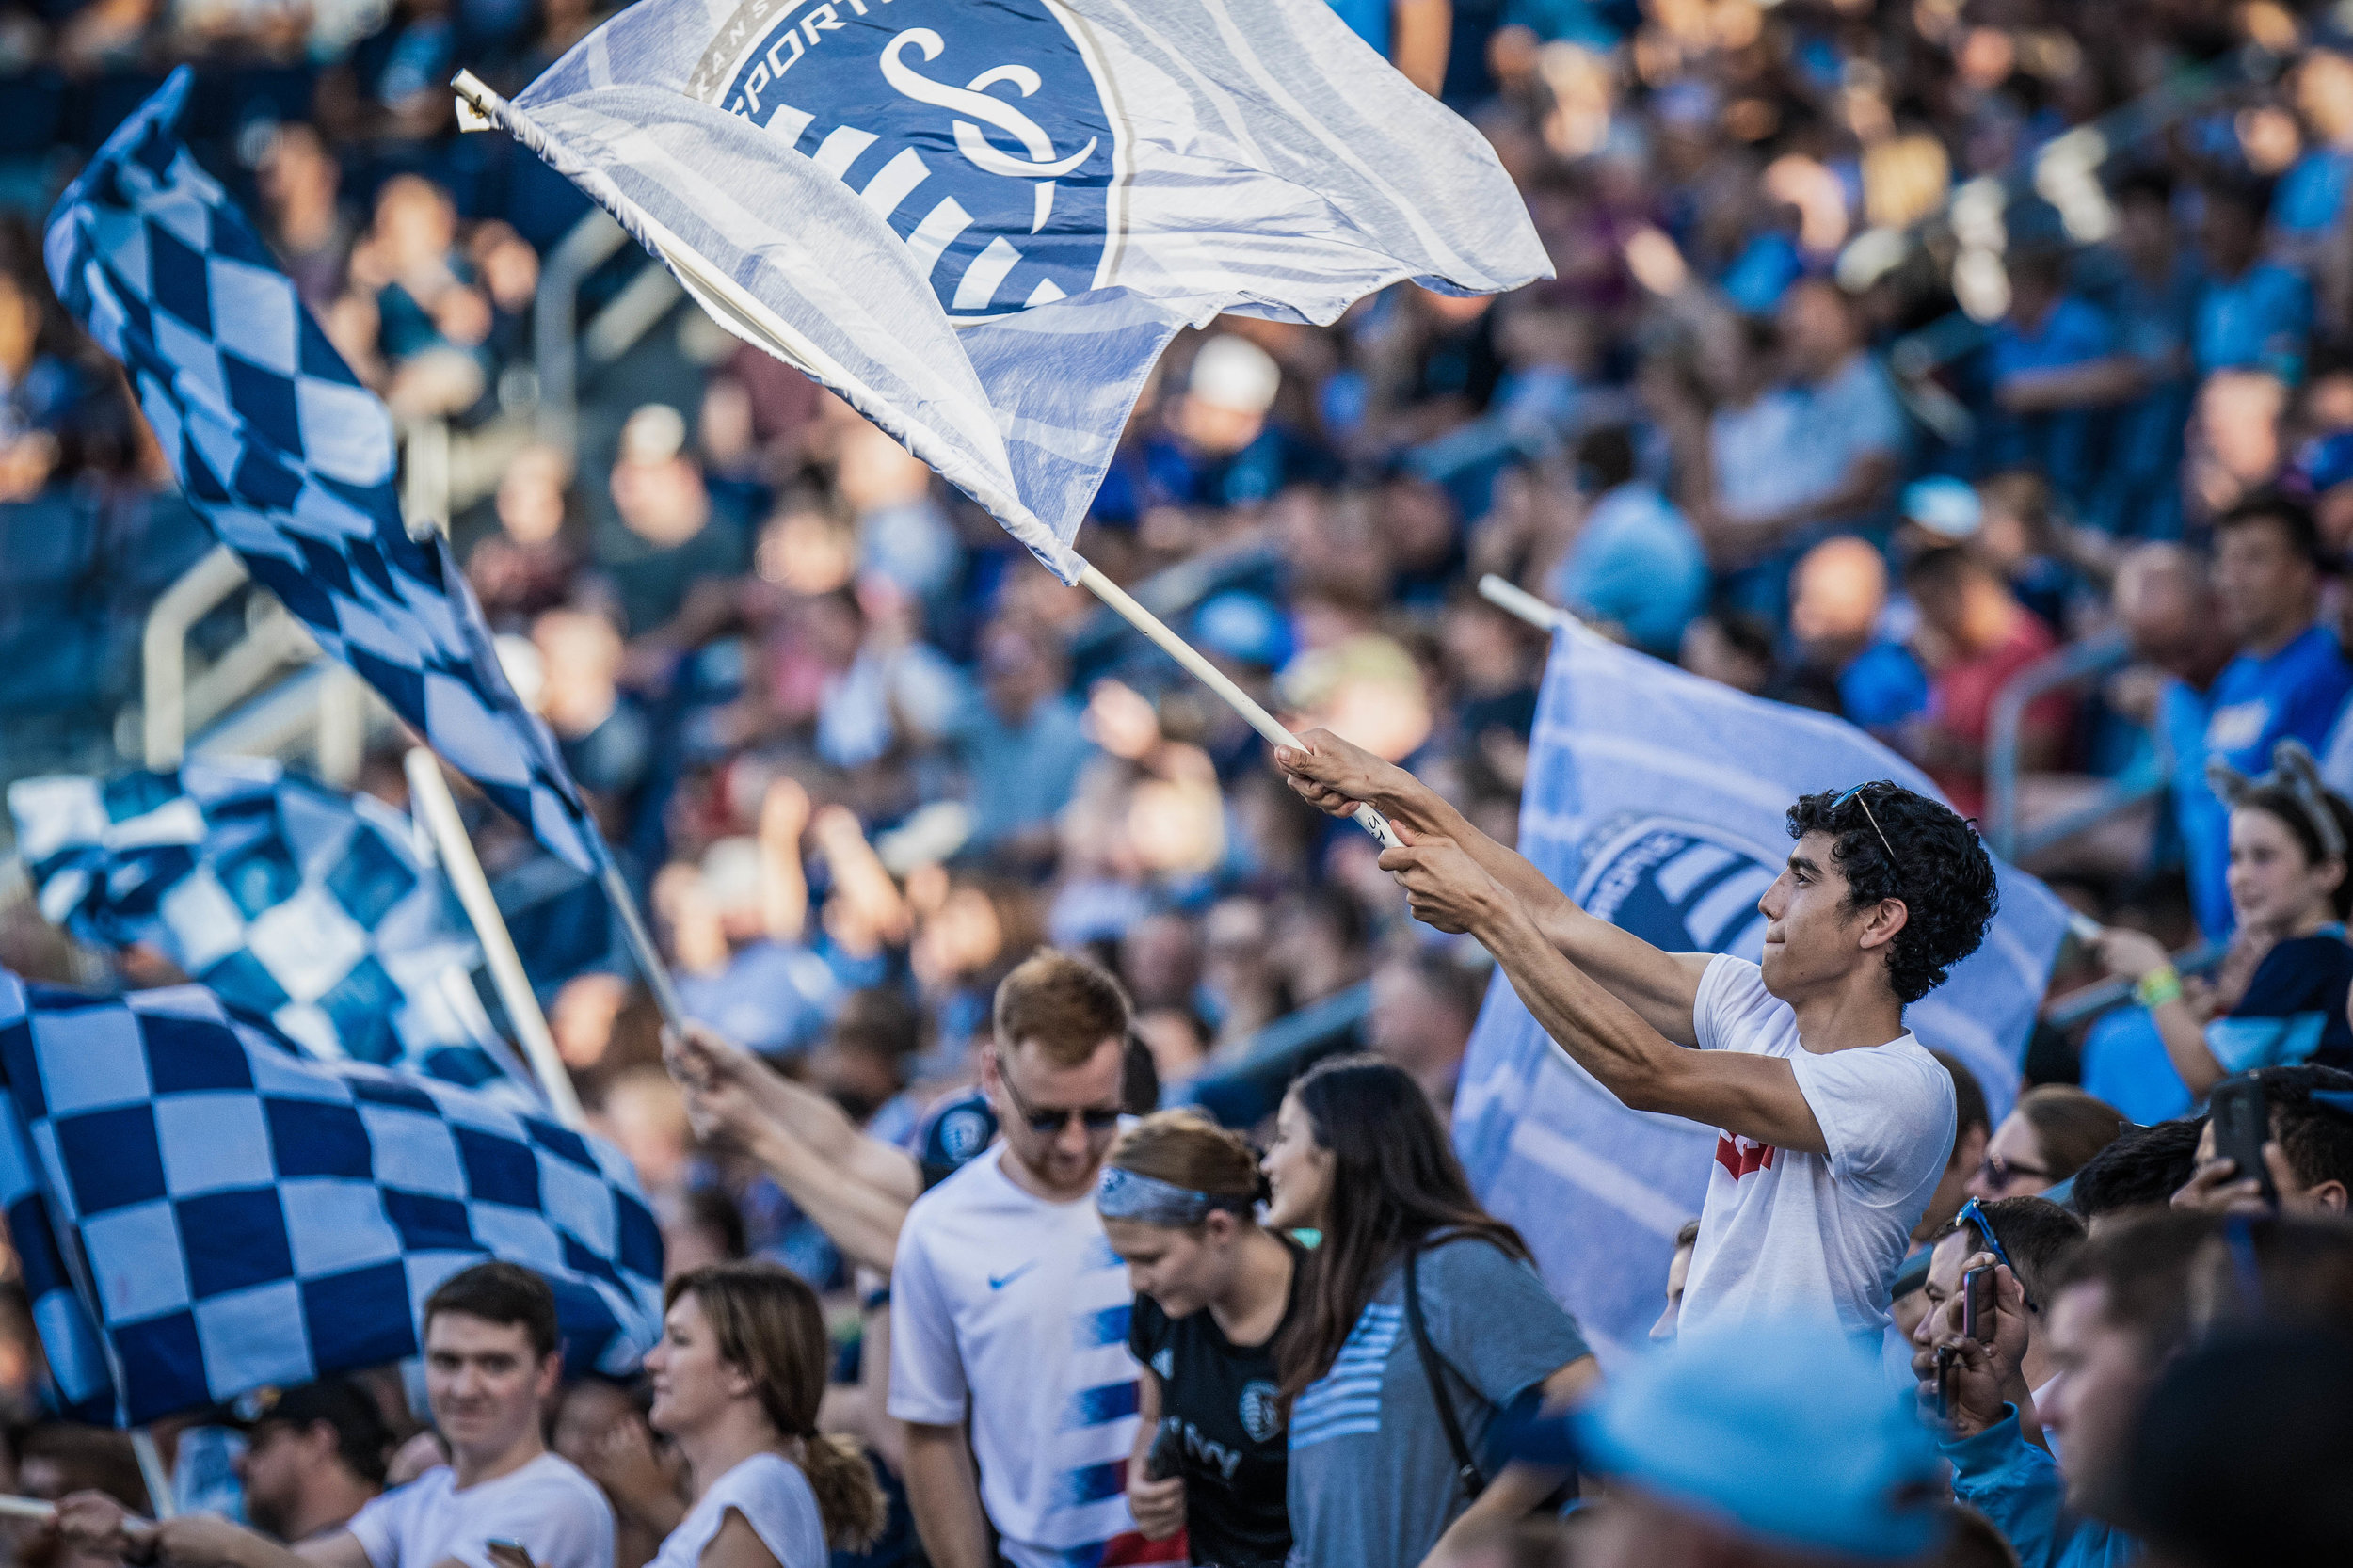 A fan waves a flag during the Sporting Kansas City vs. Chicago Fire match on Saturday, July 6, 2019 at Children's Mercy Park in Kansas City, Kansas. Sporting defeated the Fire 1-0.